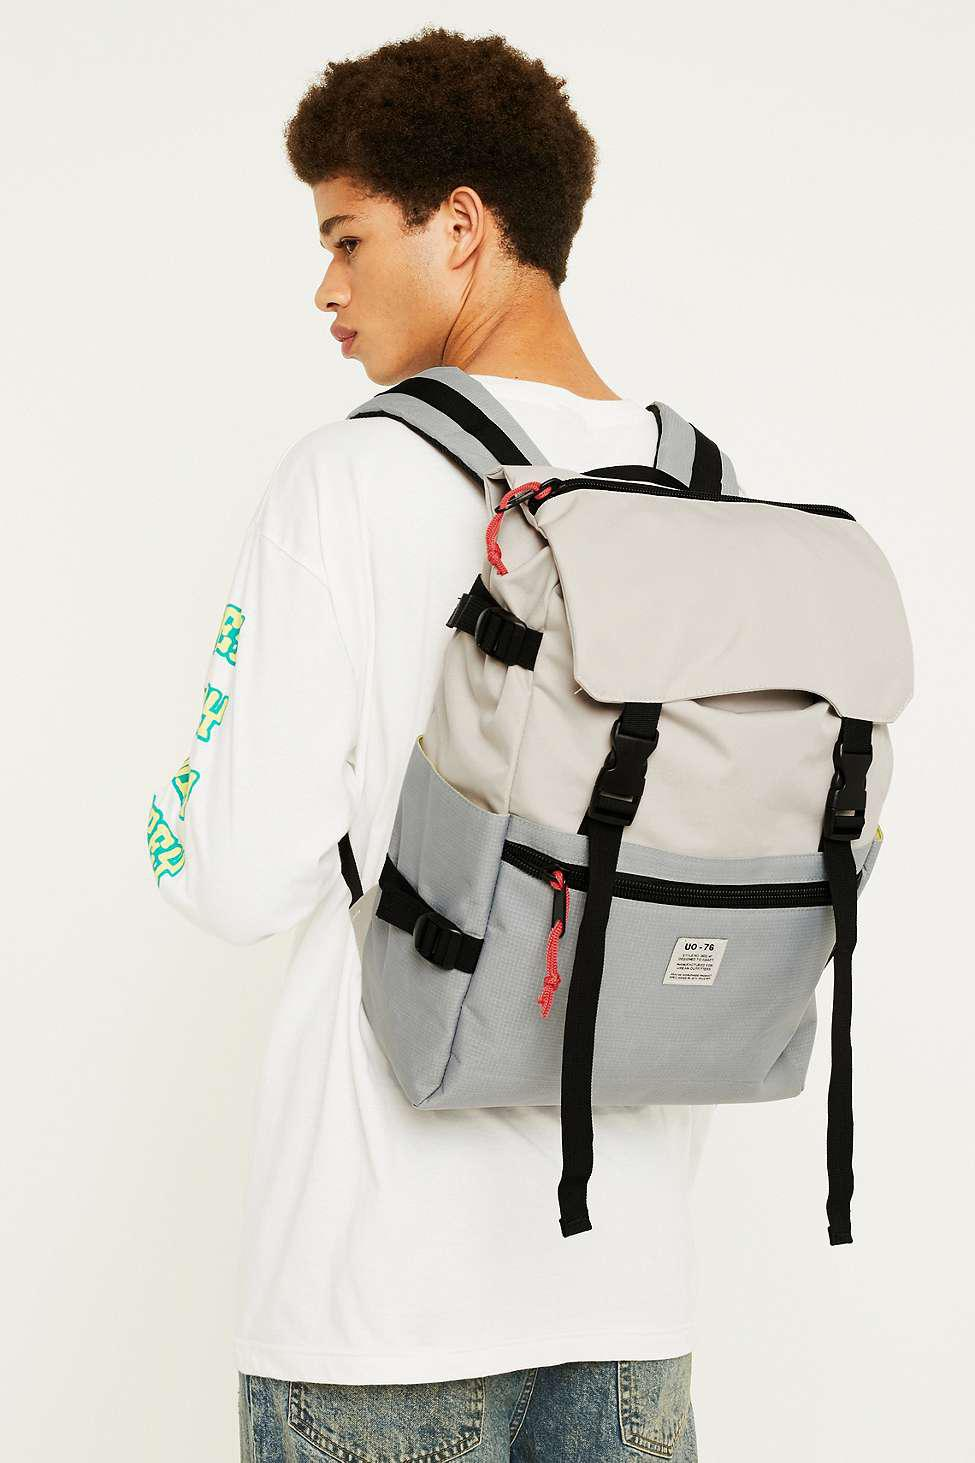 154b20ccf95 Urban Outfitters Uo Outdoor Tonal Backpack - Mens All in Gray for ...